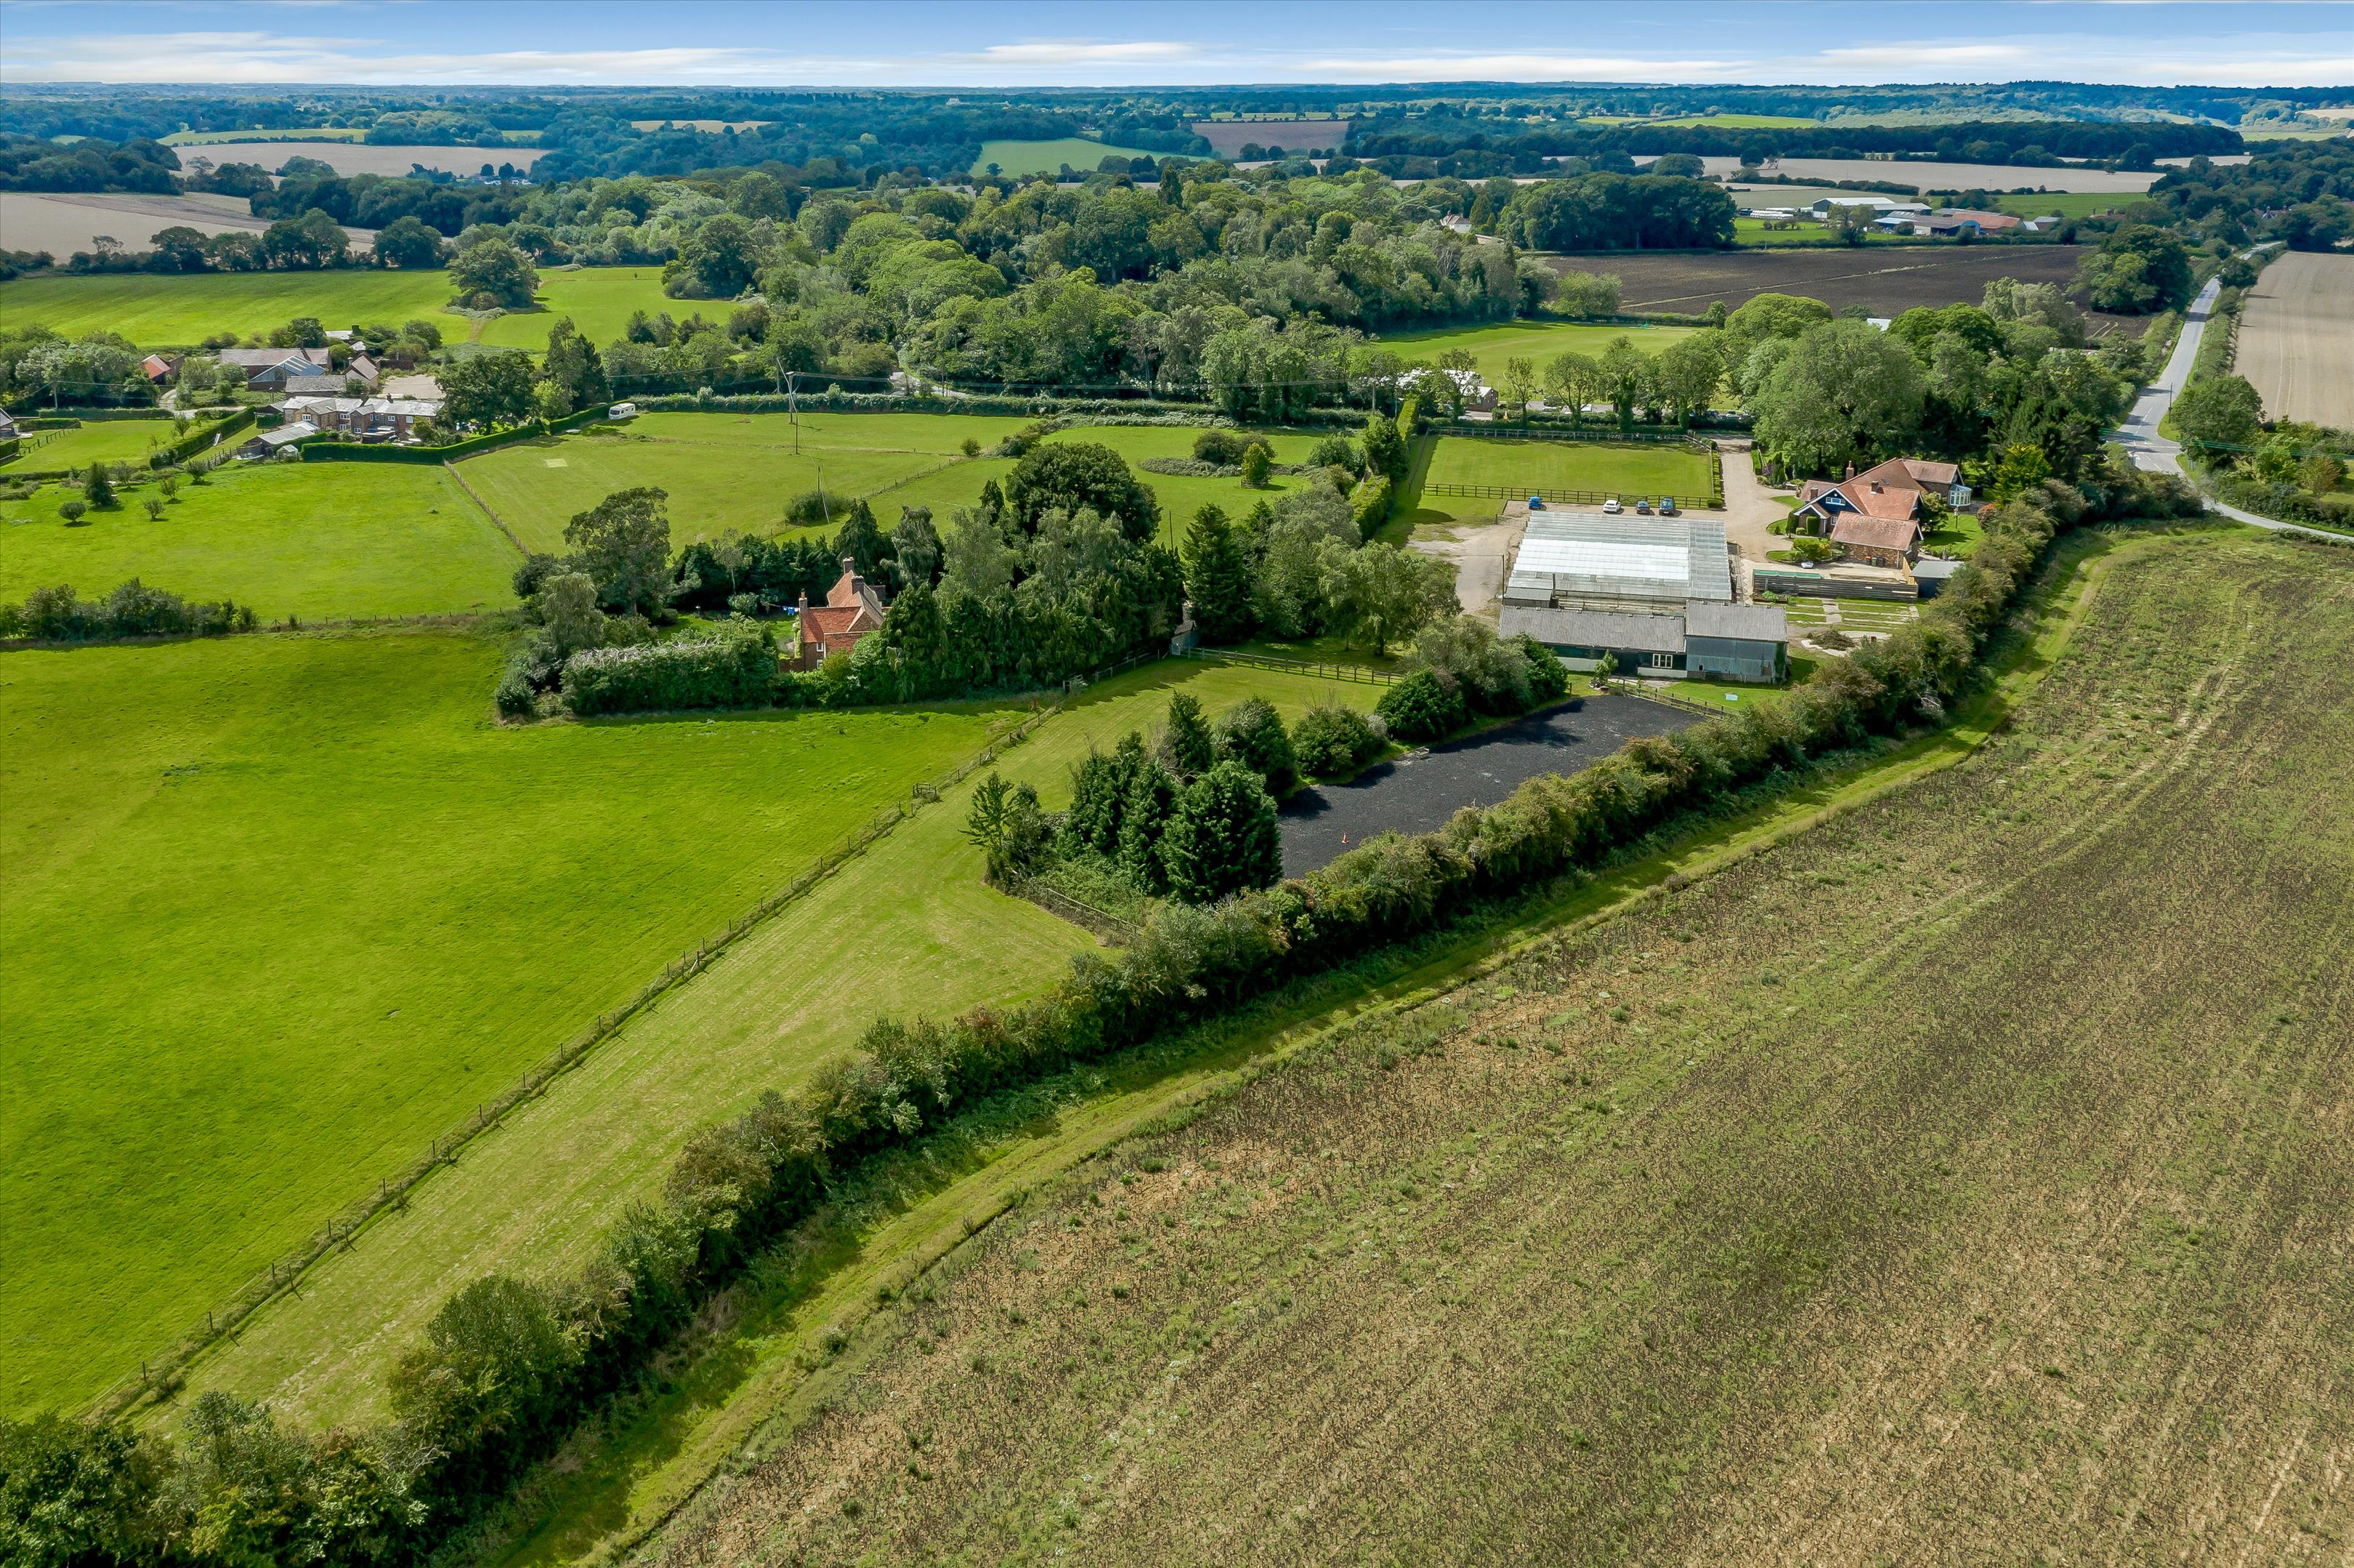 Country Properties Land Farms For Sale Or Rent Uklandandfarms Co Uk